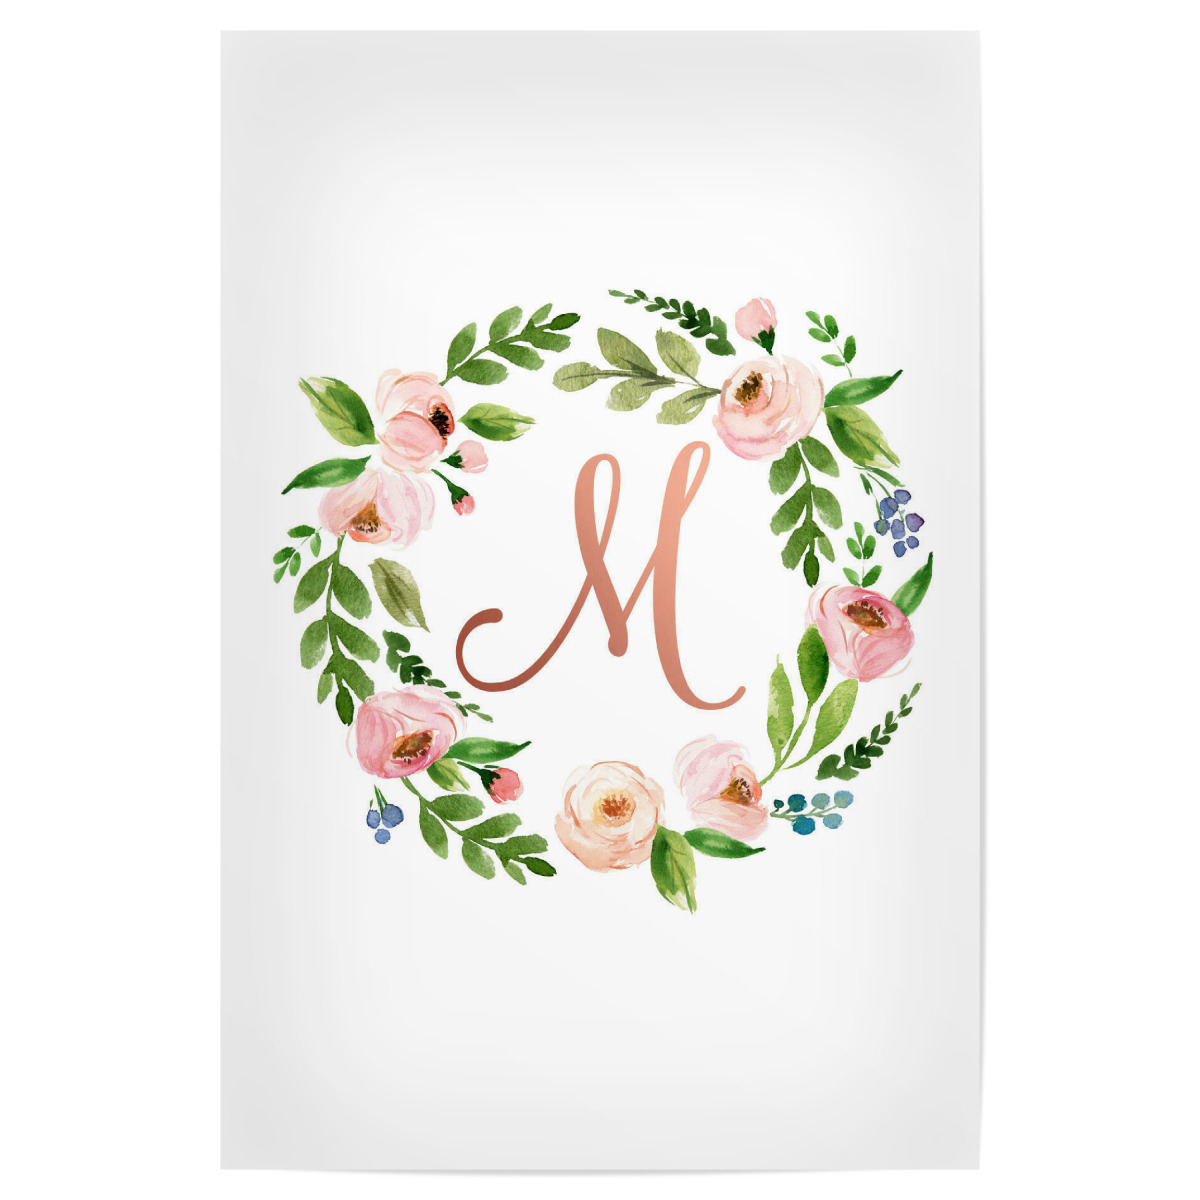 Purchase the Initial Letter M Rose Gold as a Poster at artboxONE